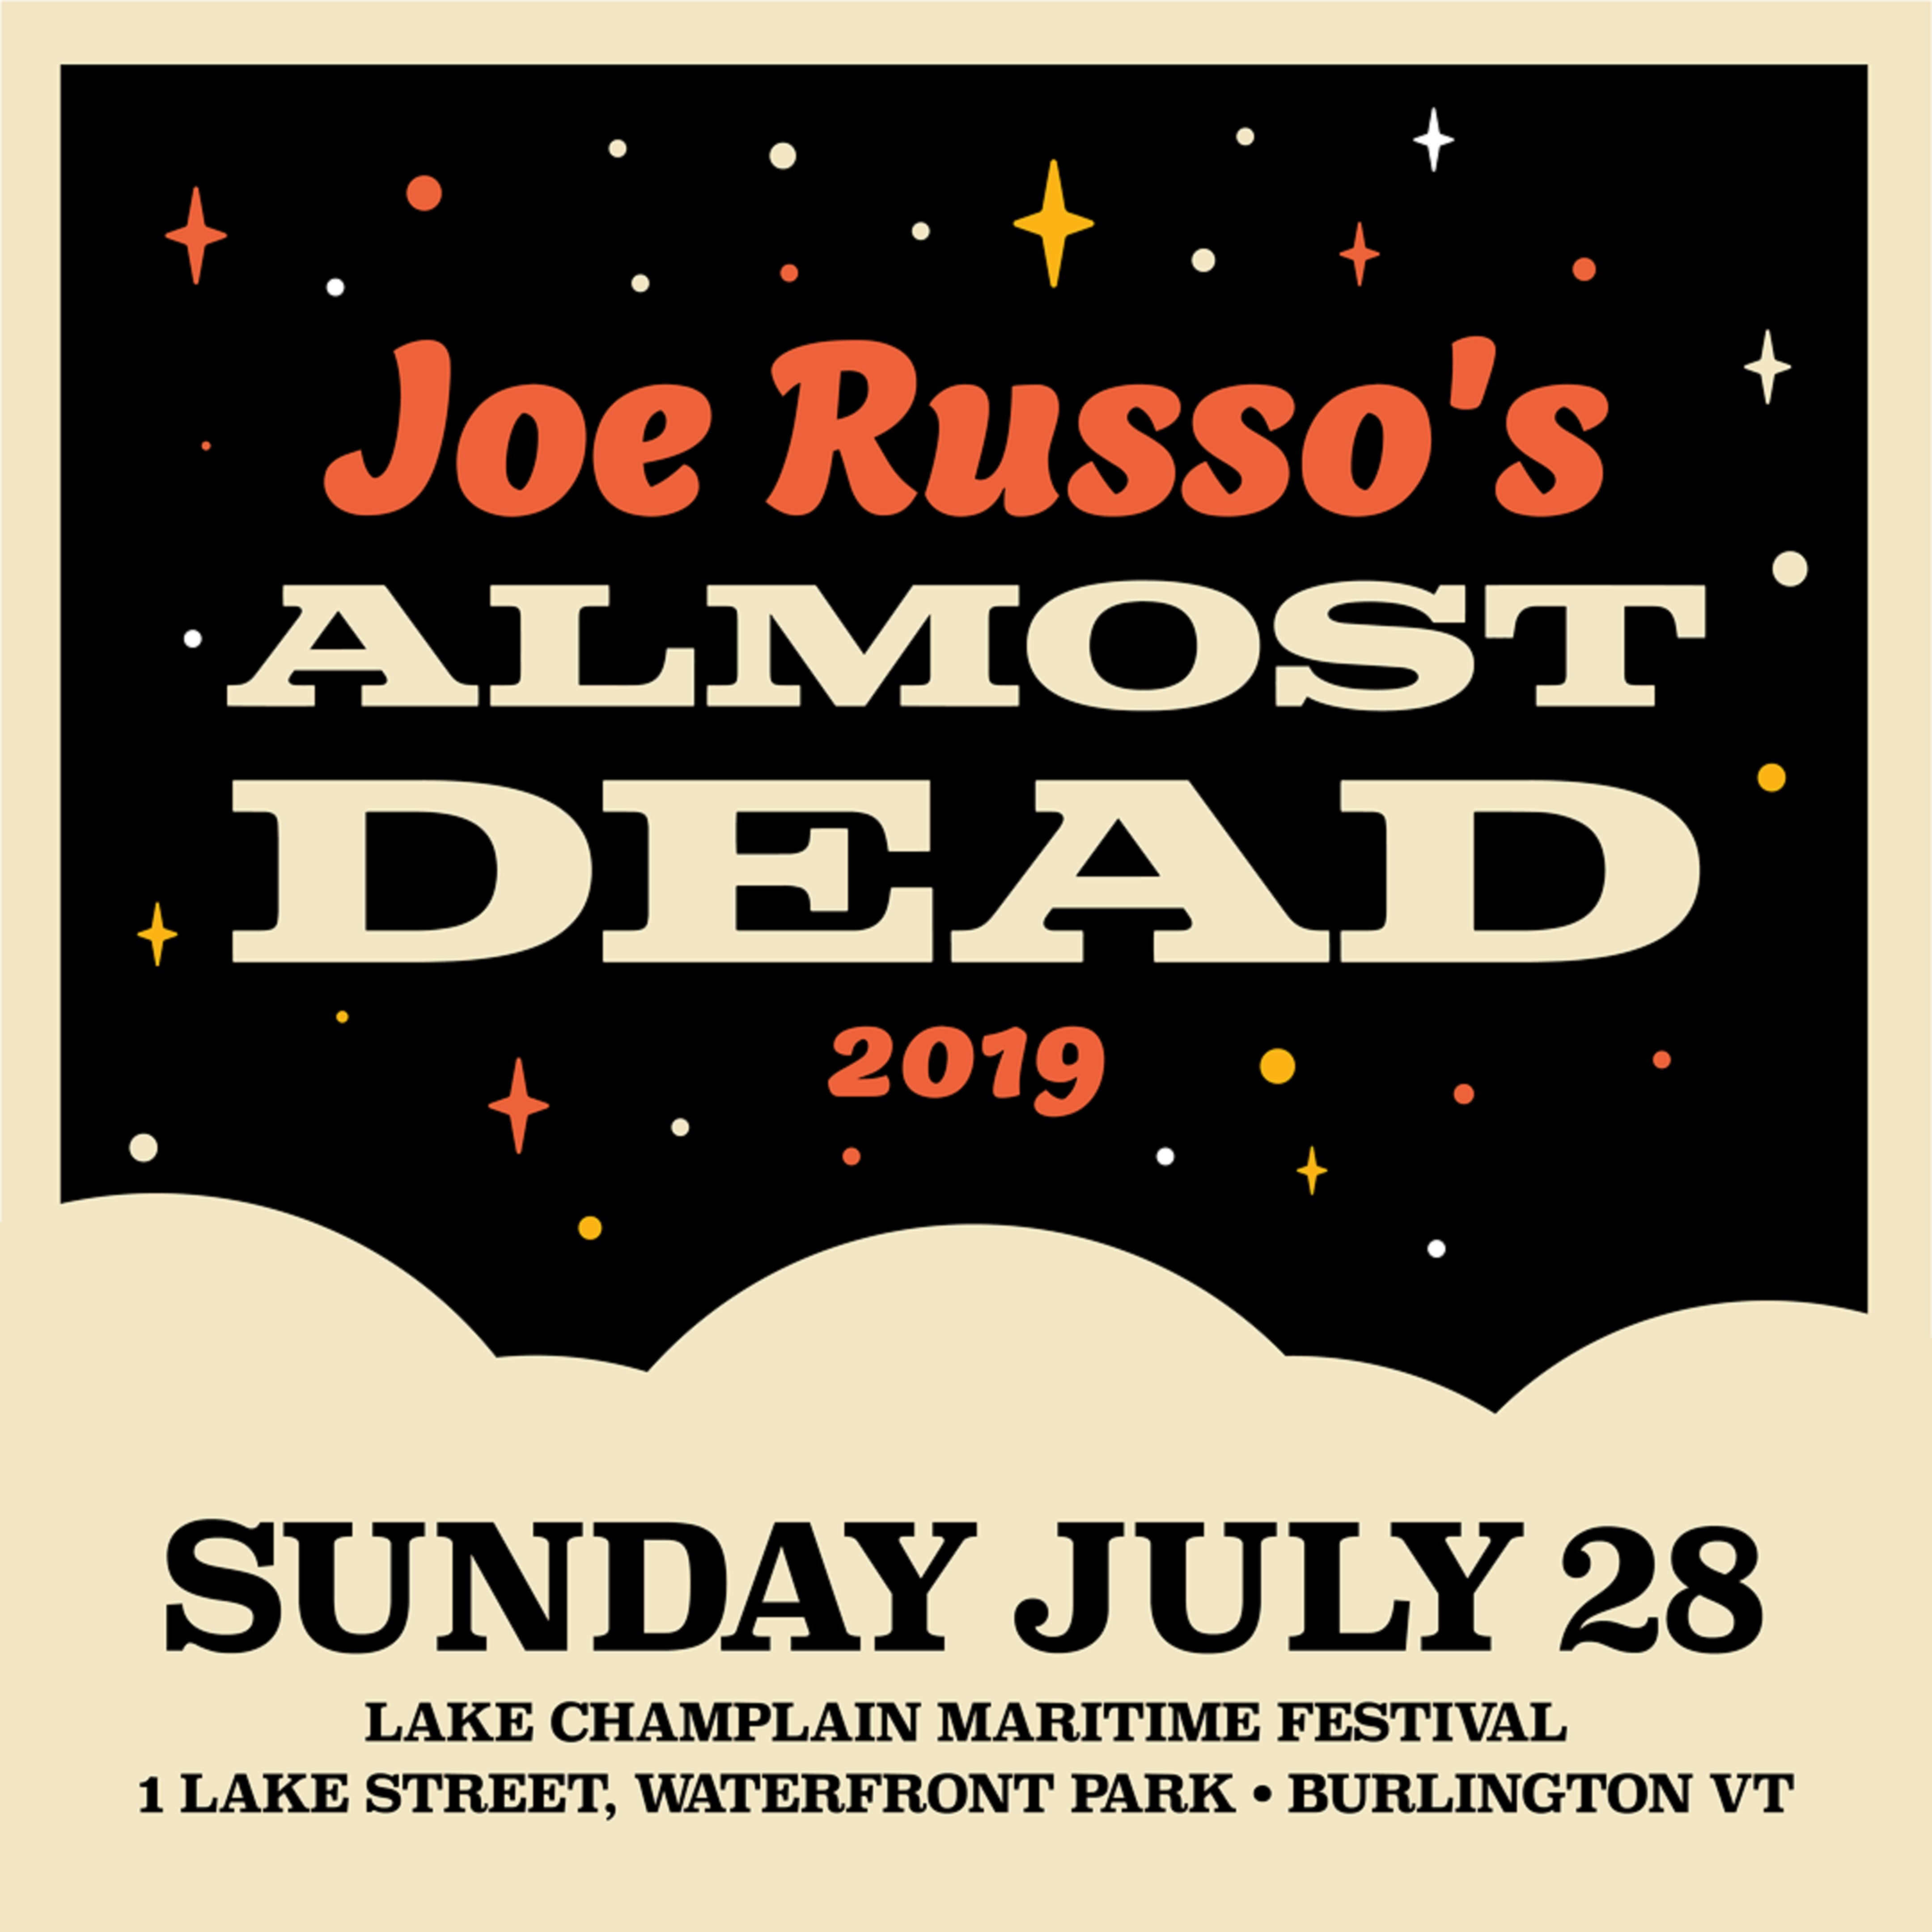 JRAD to play Lake Champlain Maritime Festival